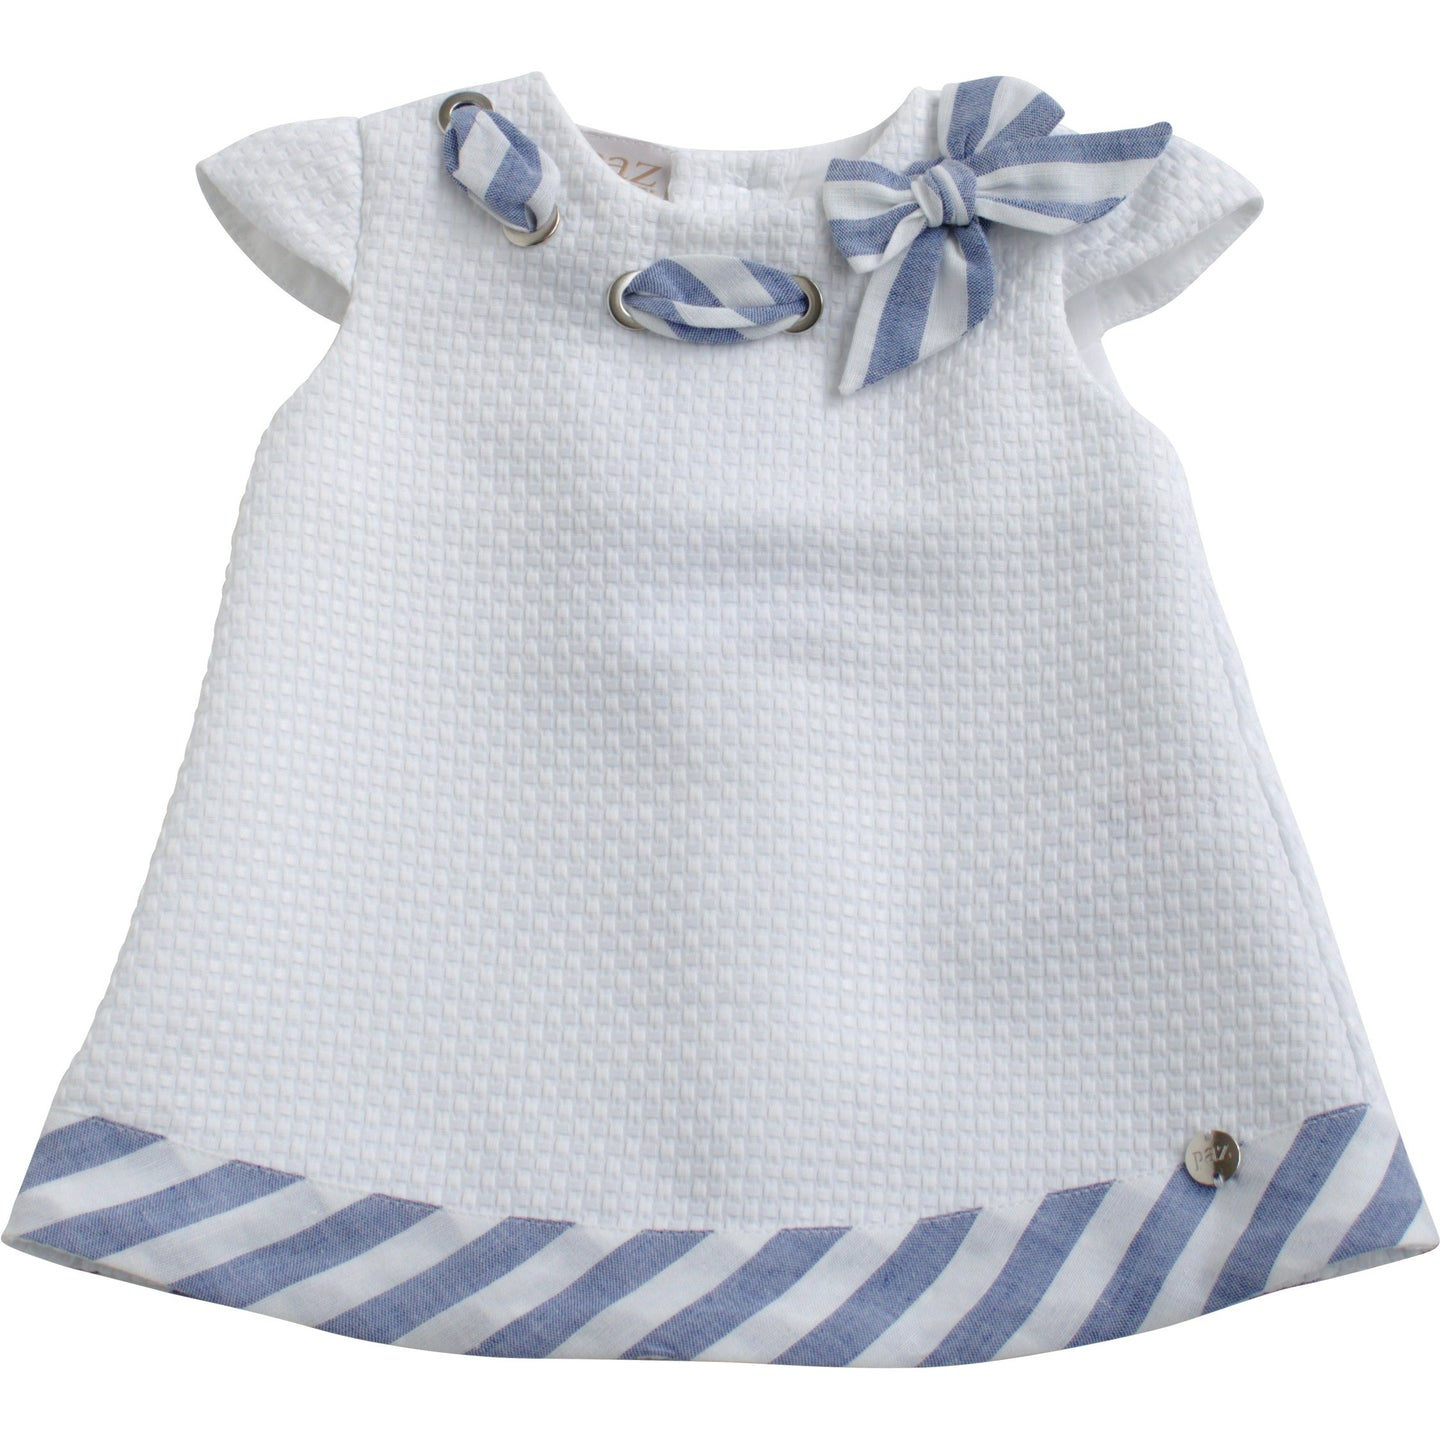 Paz Rodriguez Blue and White Dress with Bow Collar